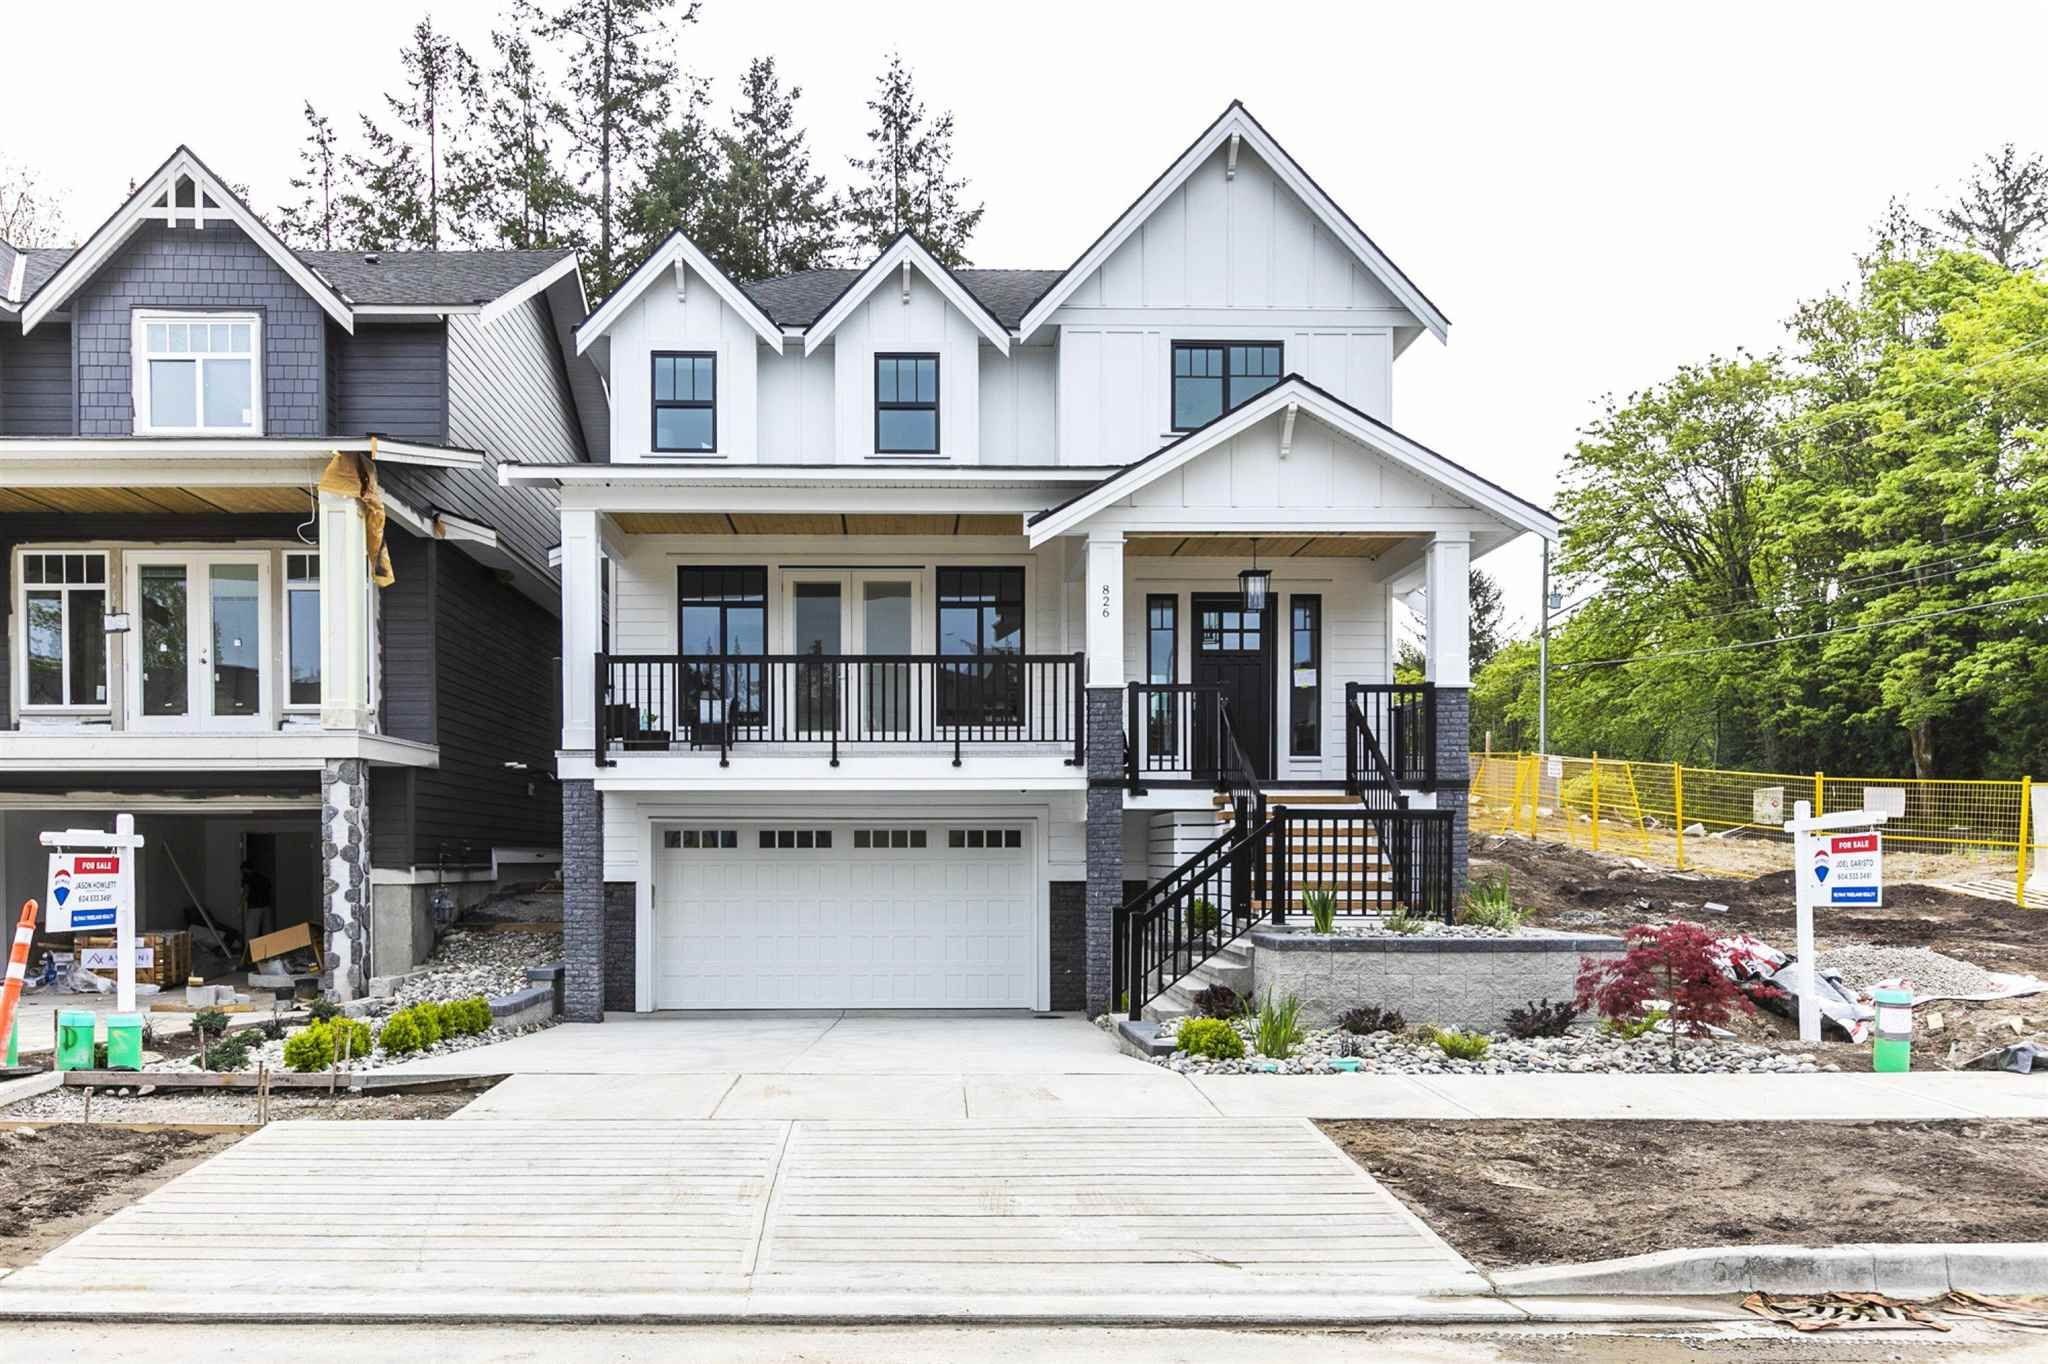 Main Photo: 842 163A STREET in Surrey: King George Corridor House for sale (South Surrey White Rock)  : MLS®# R2598024